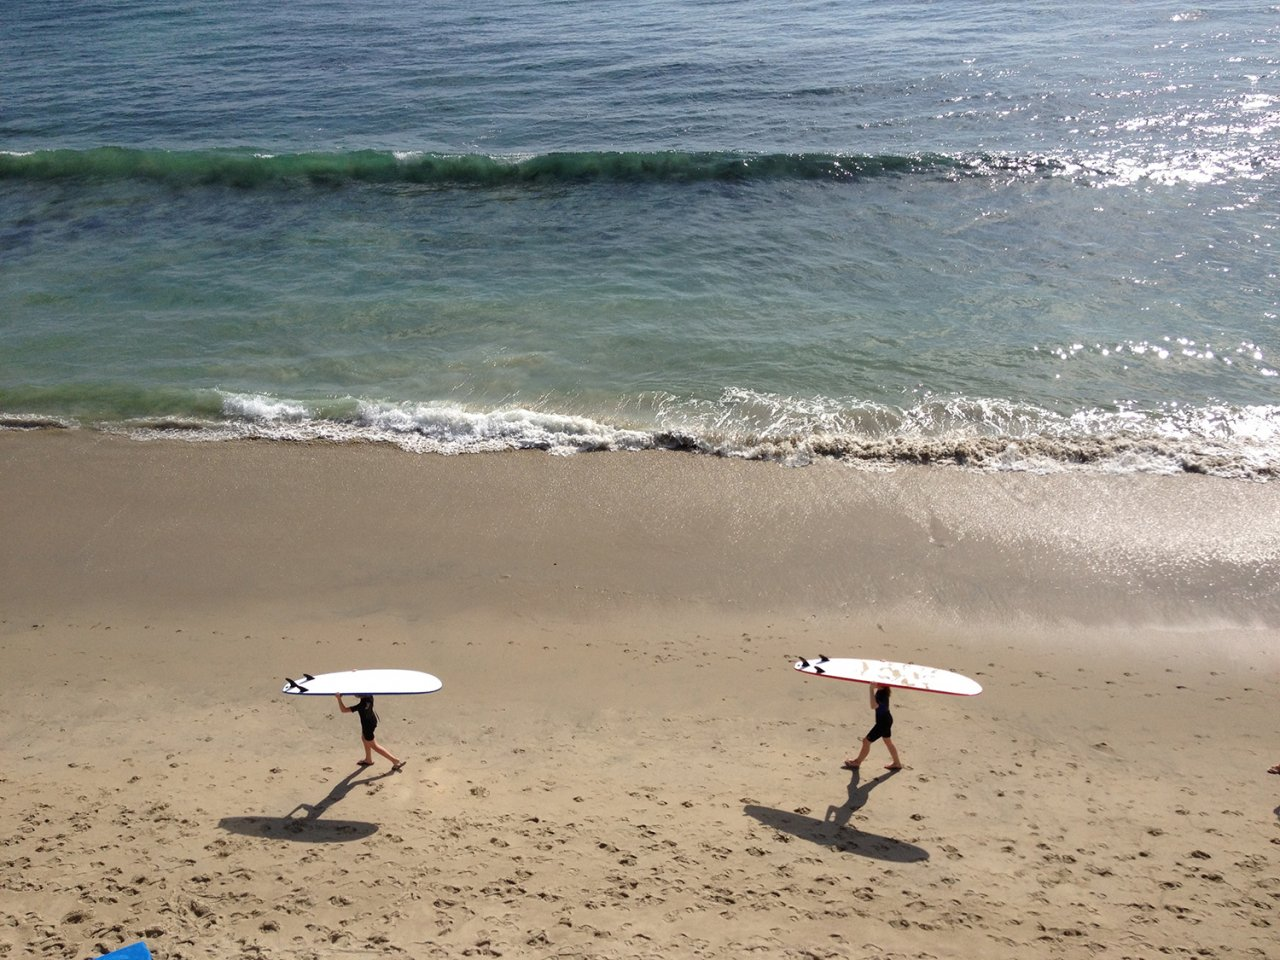 Two ladies walking on beach with surfboards balanced on their heads